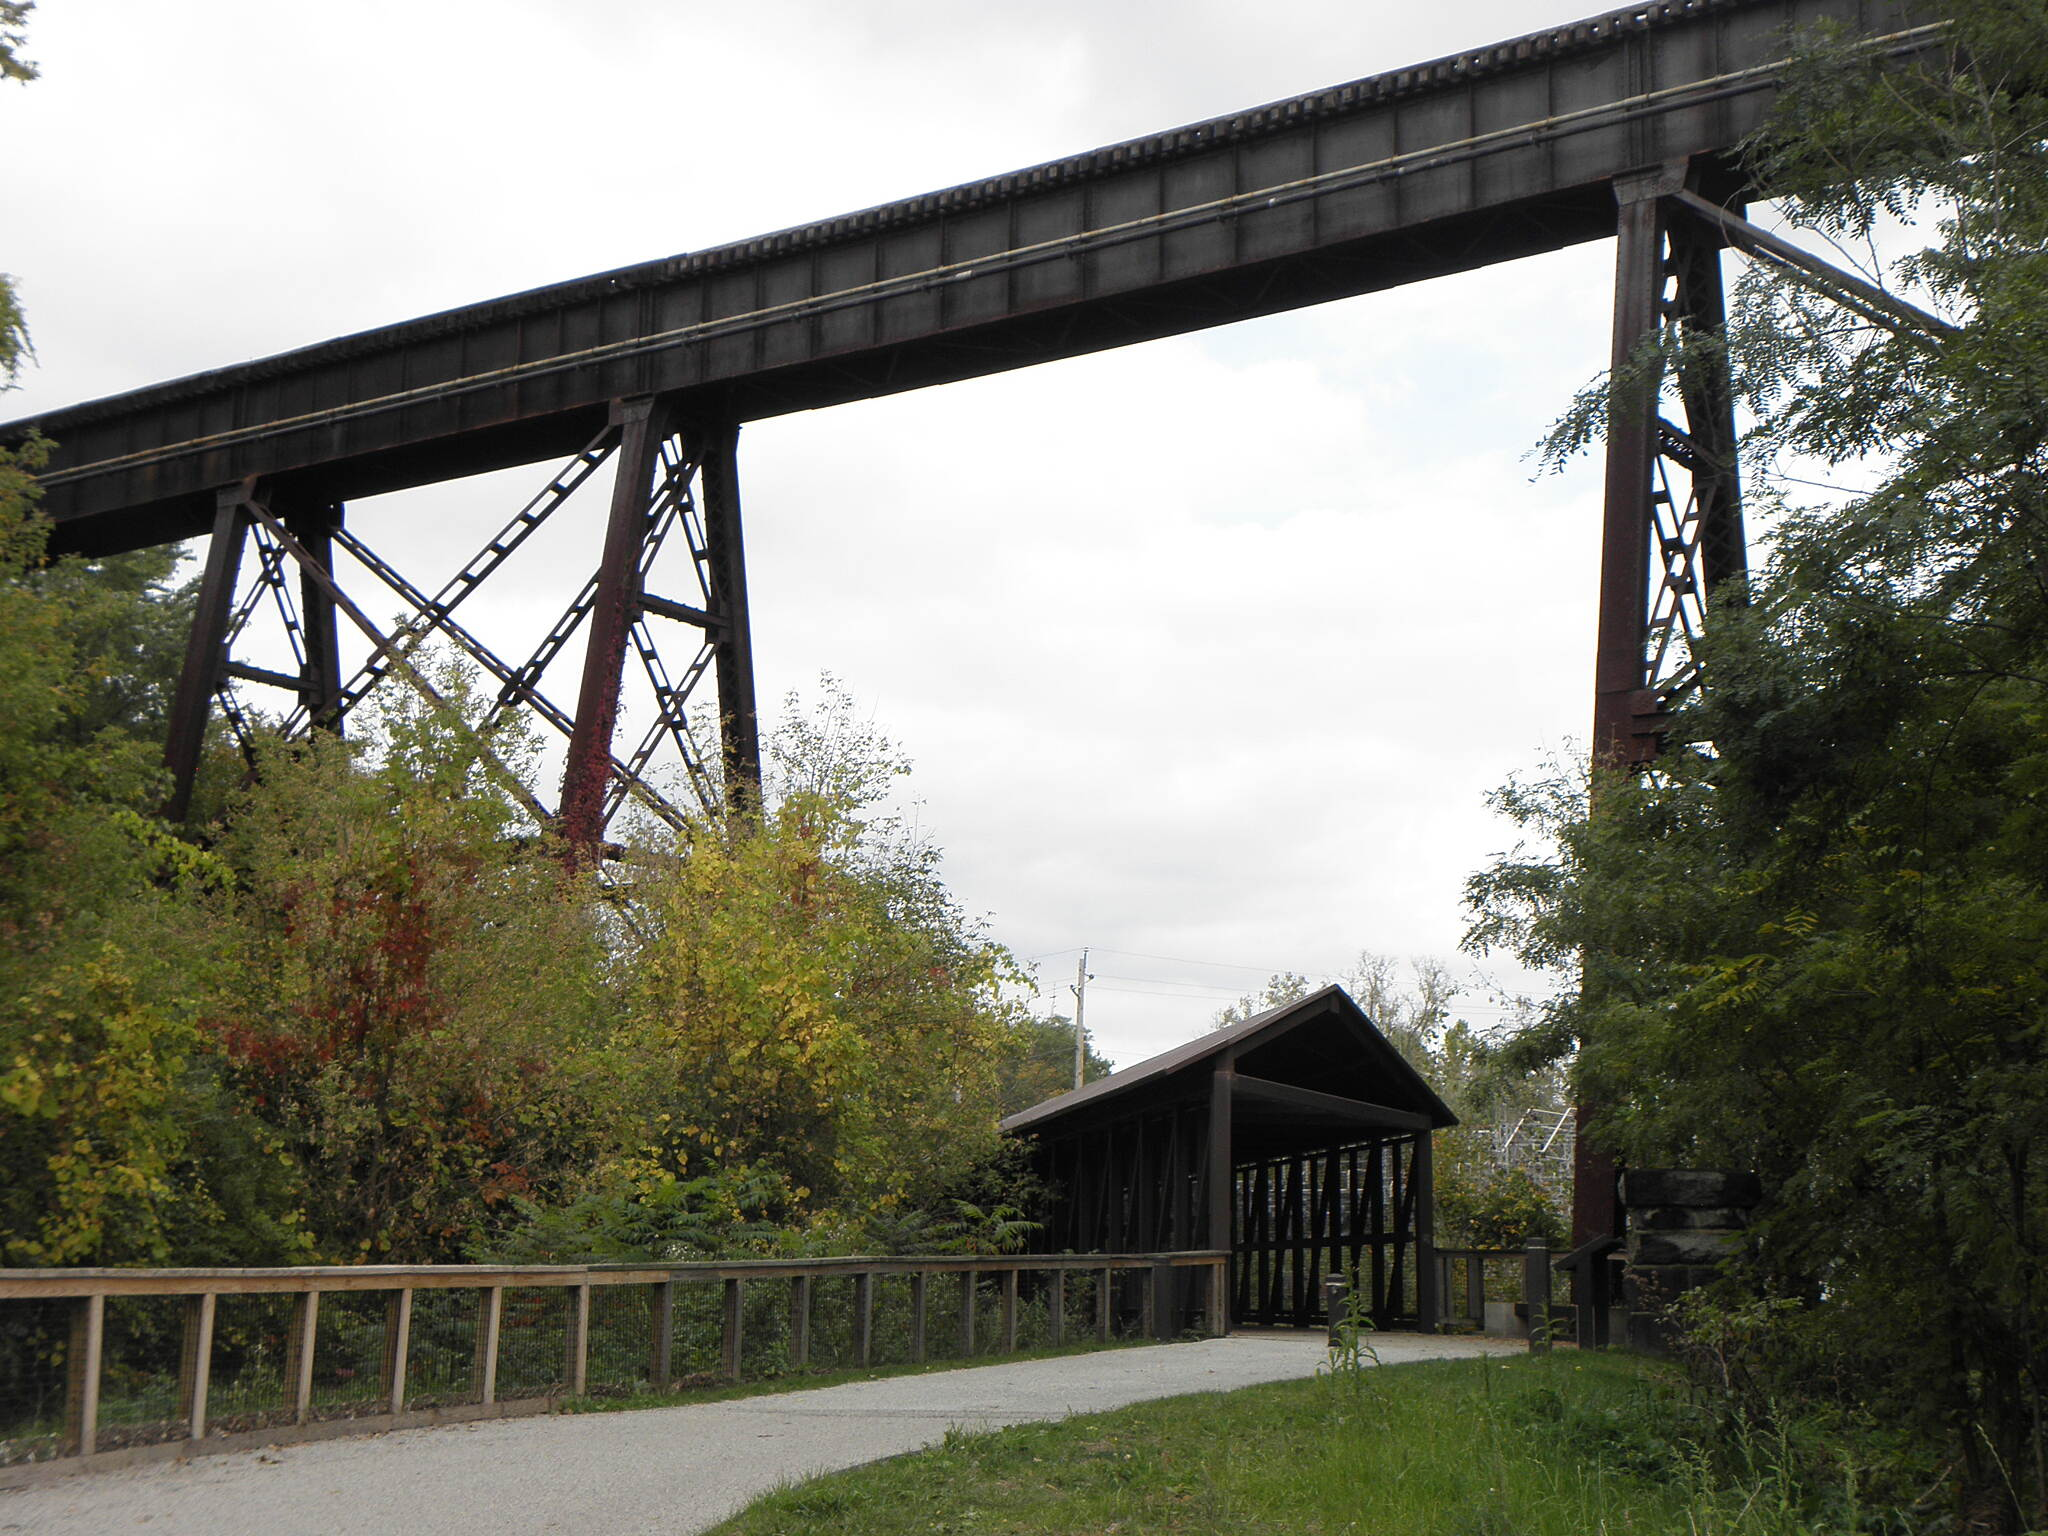 Ohio & Erie Canal Towpath Trail Trail goes under Akron, Canton & Youngstown Railroad Roof over the trail protects trail users from falling debris from trains passing overhead.